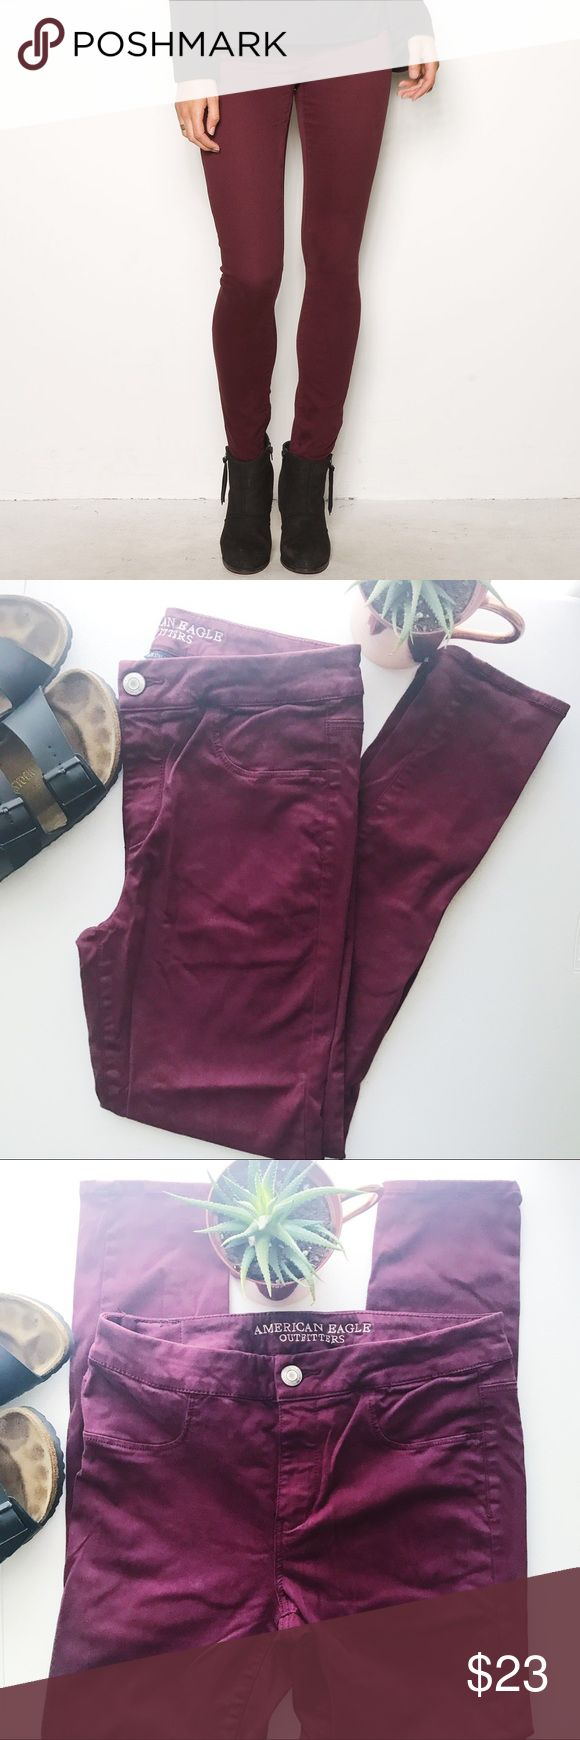 NWOT AMERICAN EAGLE 🦅 jegging AMERICAN EAGLE 🦅 Jegging. Super stretch high rise skinny jean that pops your closet with a fun wine color. Throw your leather jacket and some ankle boots with it for a more sleek look or add a basic white tee and your converse to complete a cute casual style! 🌵BUNDLE AND SAVE! Offers welcome 💌 American Eagle Outfitters Jeans Skinny